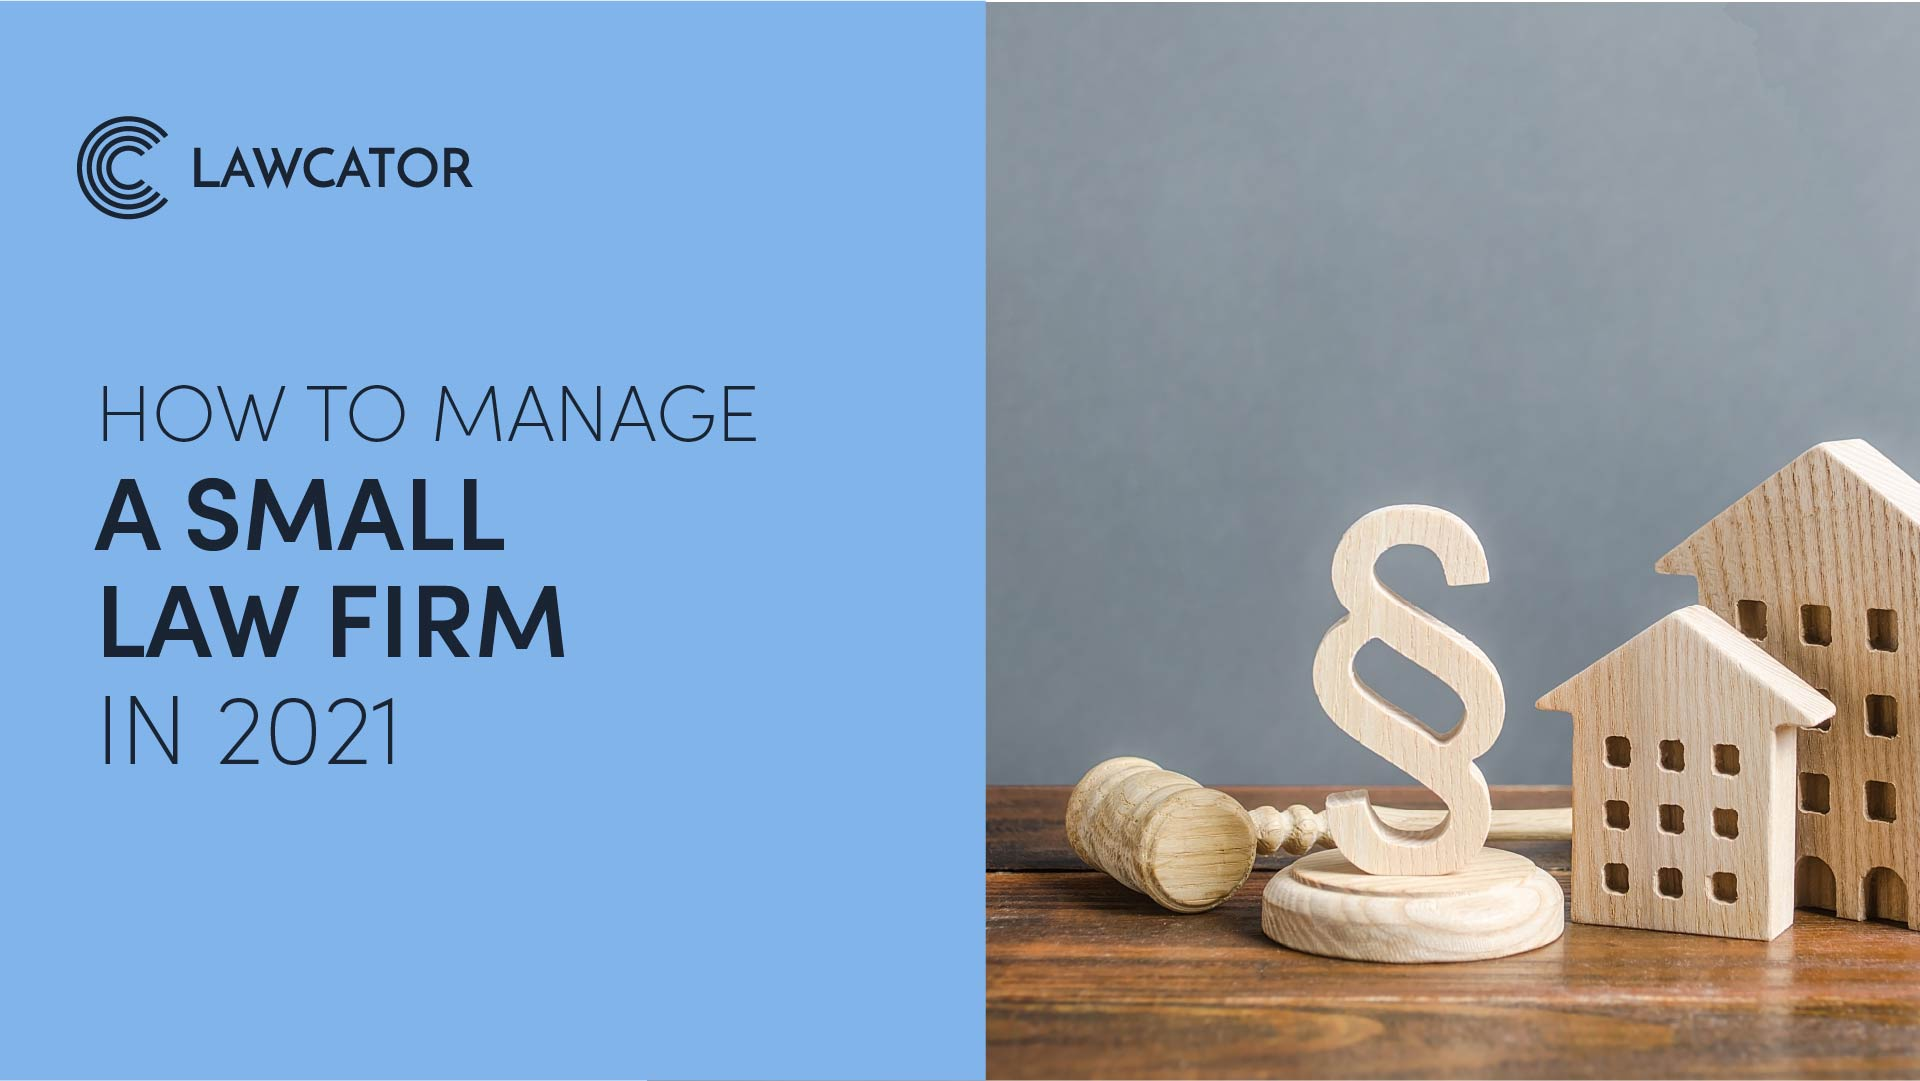 How to manage a small law firm in 2021